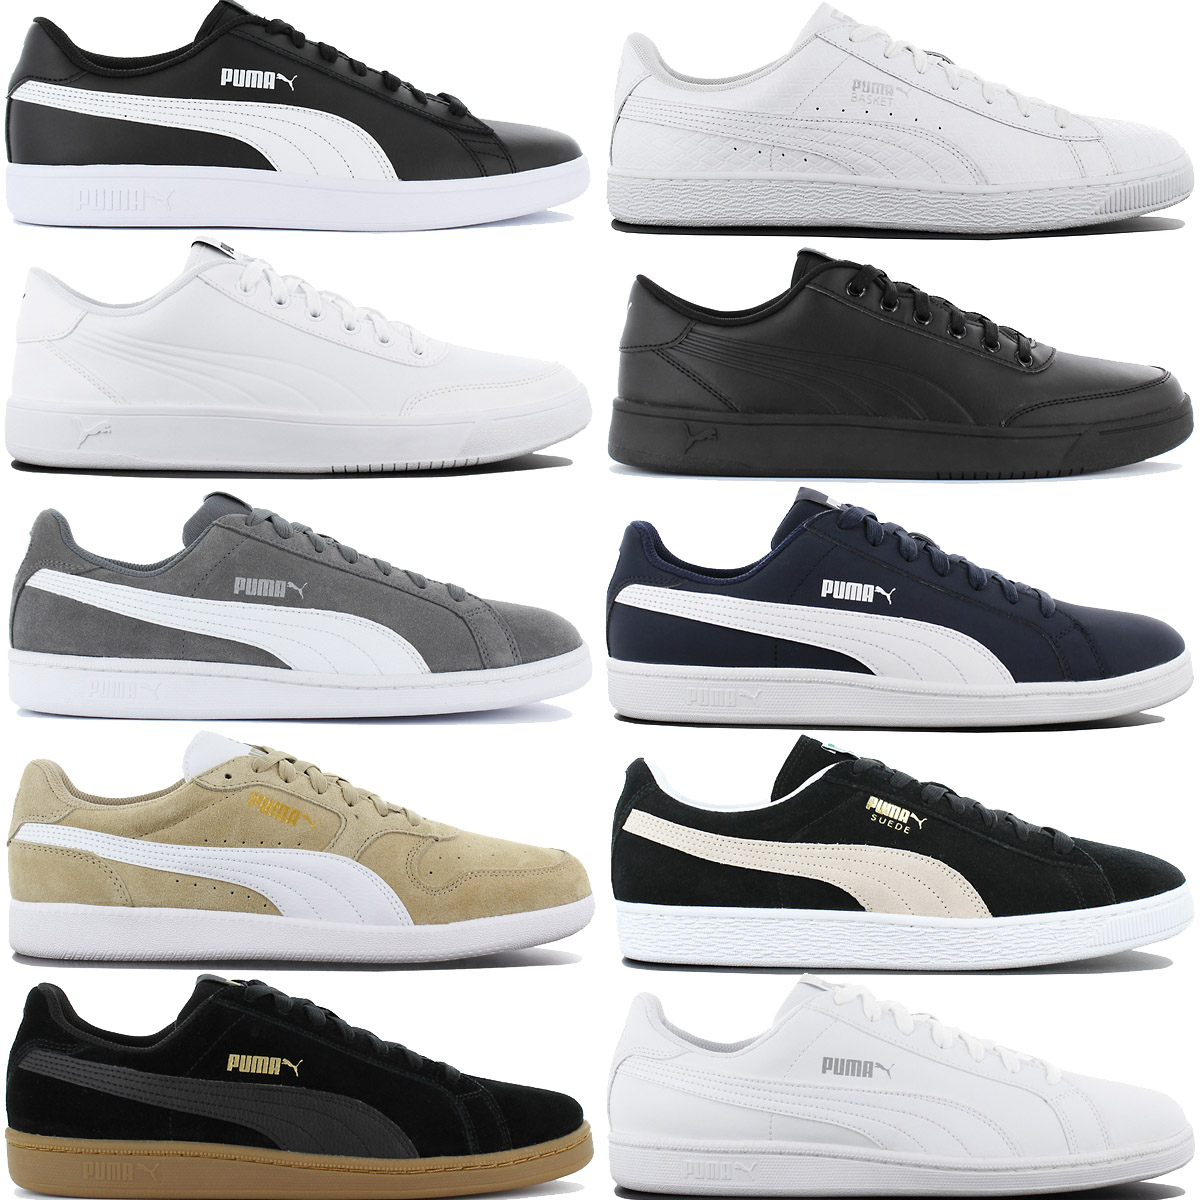 Details about Puma Men's Leather Sneaker Shoes Casual Trainers Suede Classic Suede New